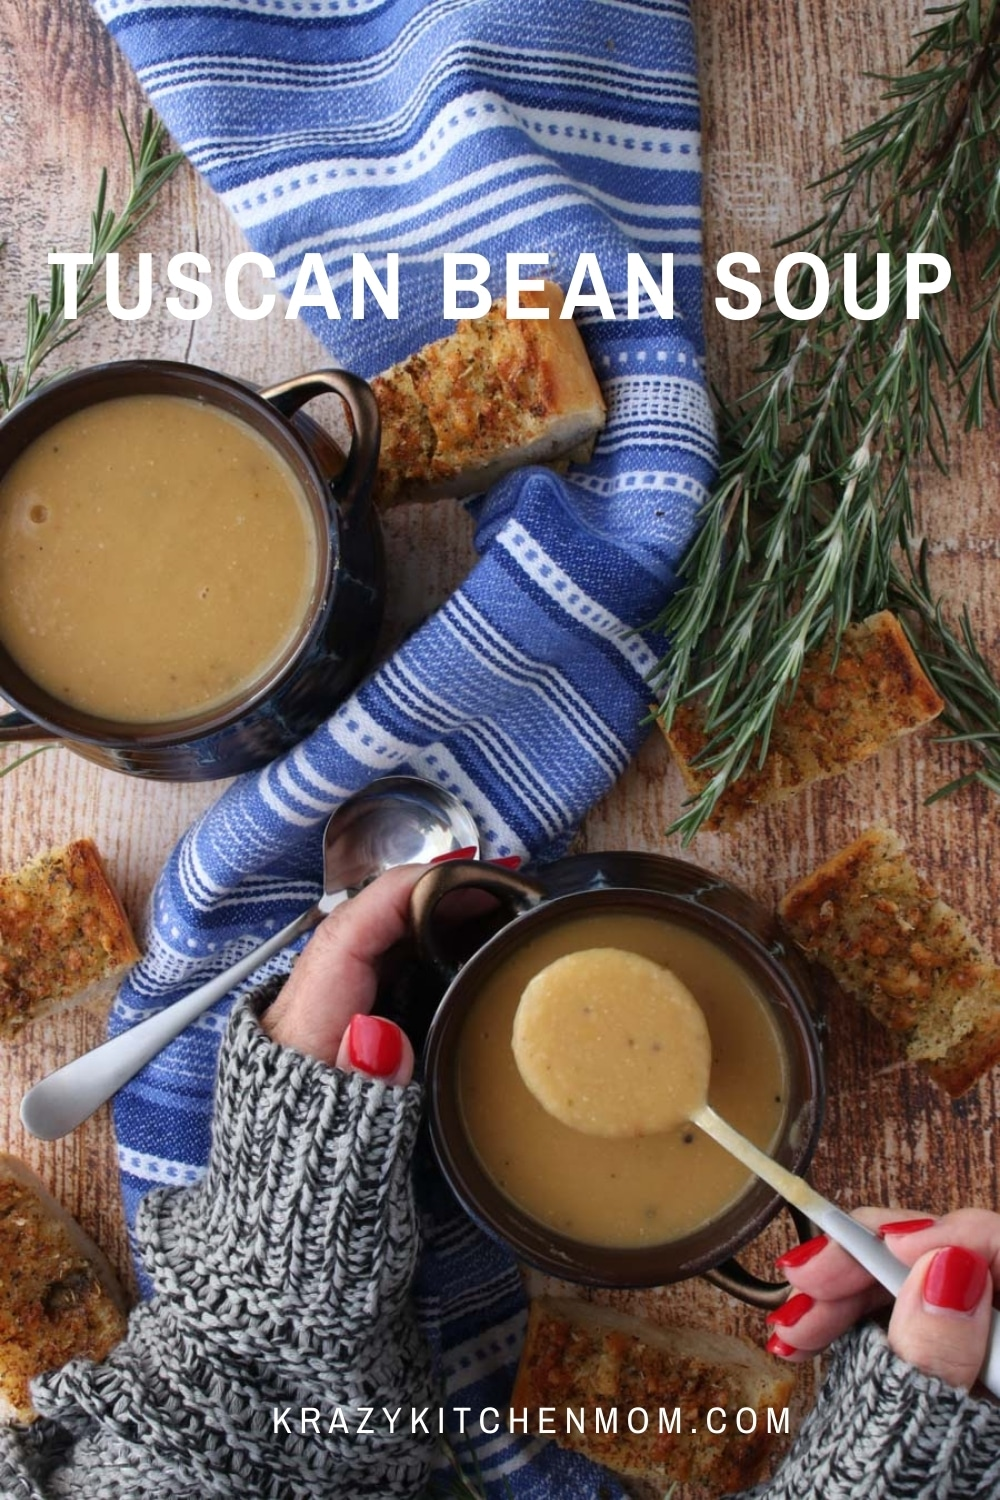 This restaurant-quality soup is hearty enough to stand on its own for dinner or lunch. Serve it with some garlic bread or a small salad. via @krazykitchenmom